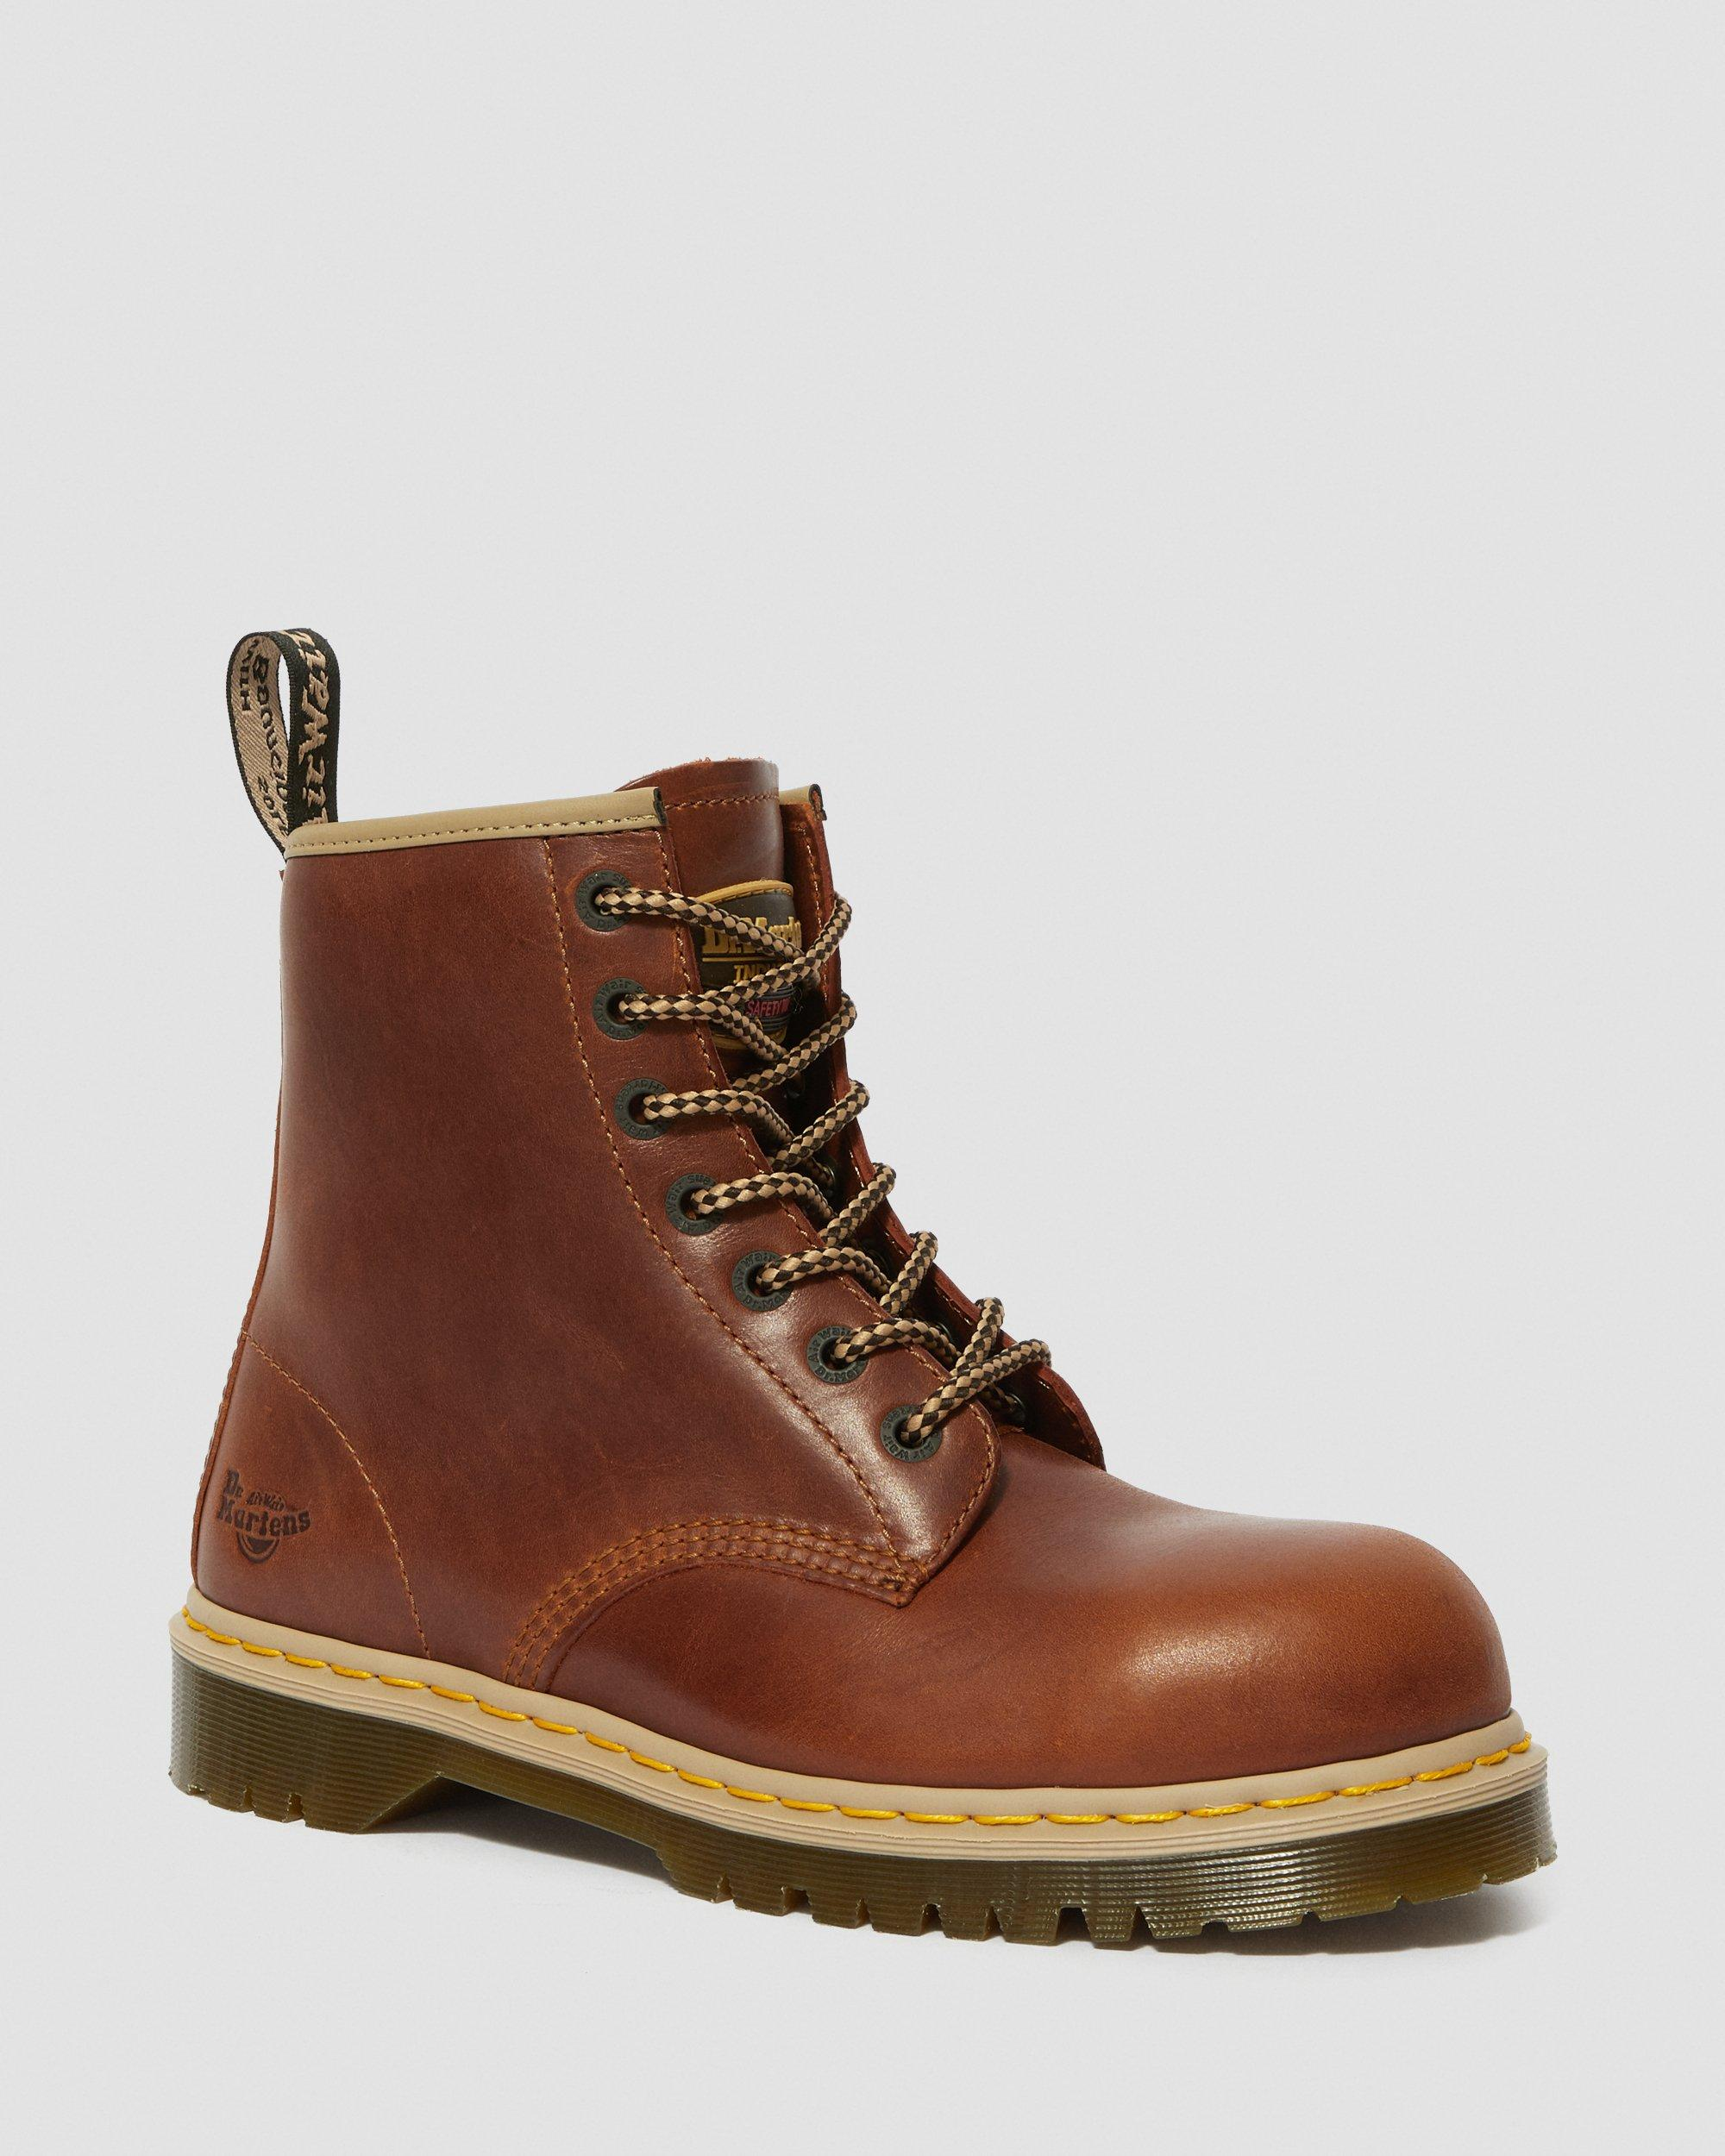 ICON 7B10 STEEL TOE WORK BOOTS | Dr